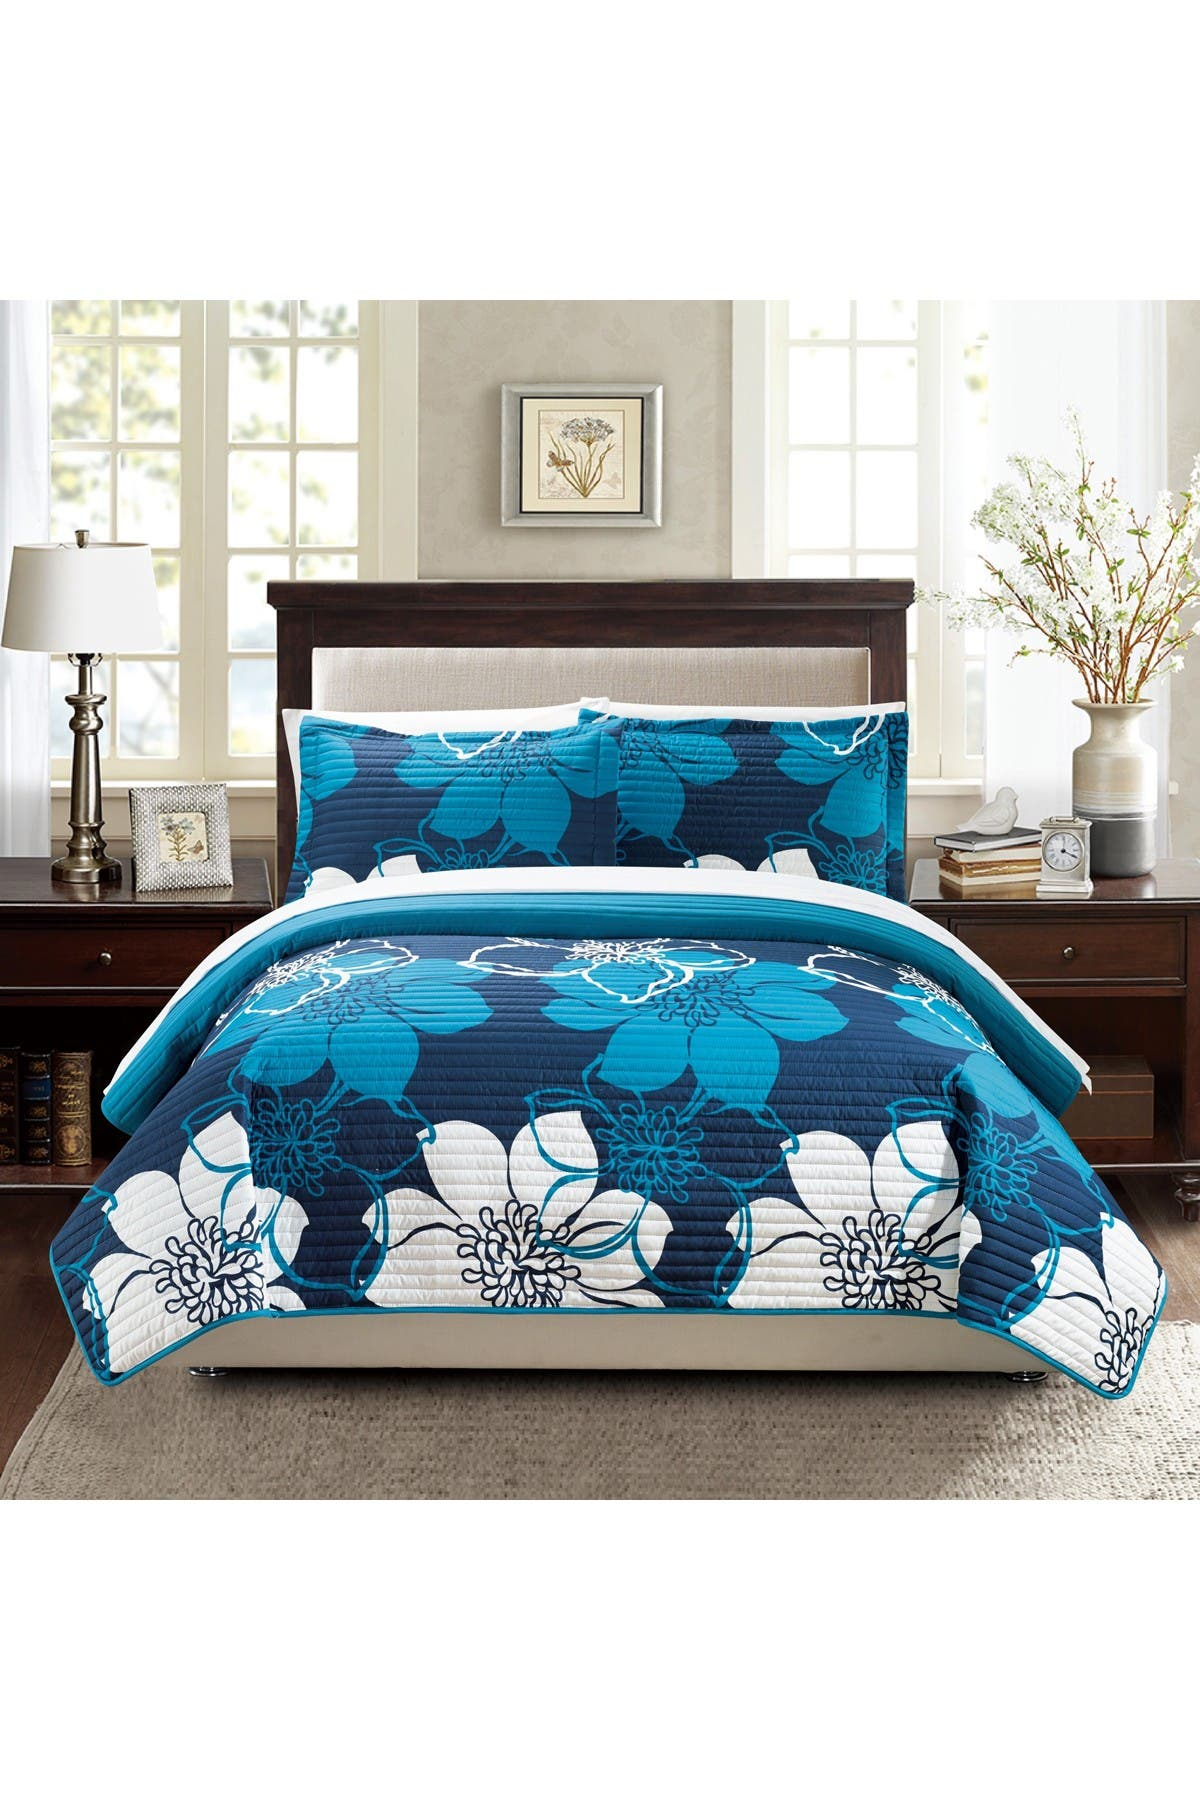 Image of Chic Home Bedding King Miles Abstract Quilt Set - Blue